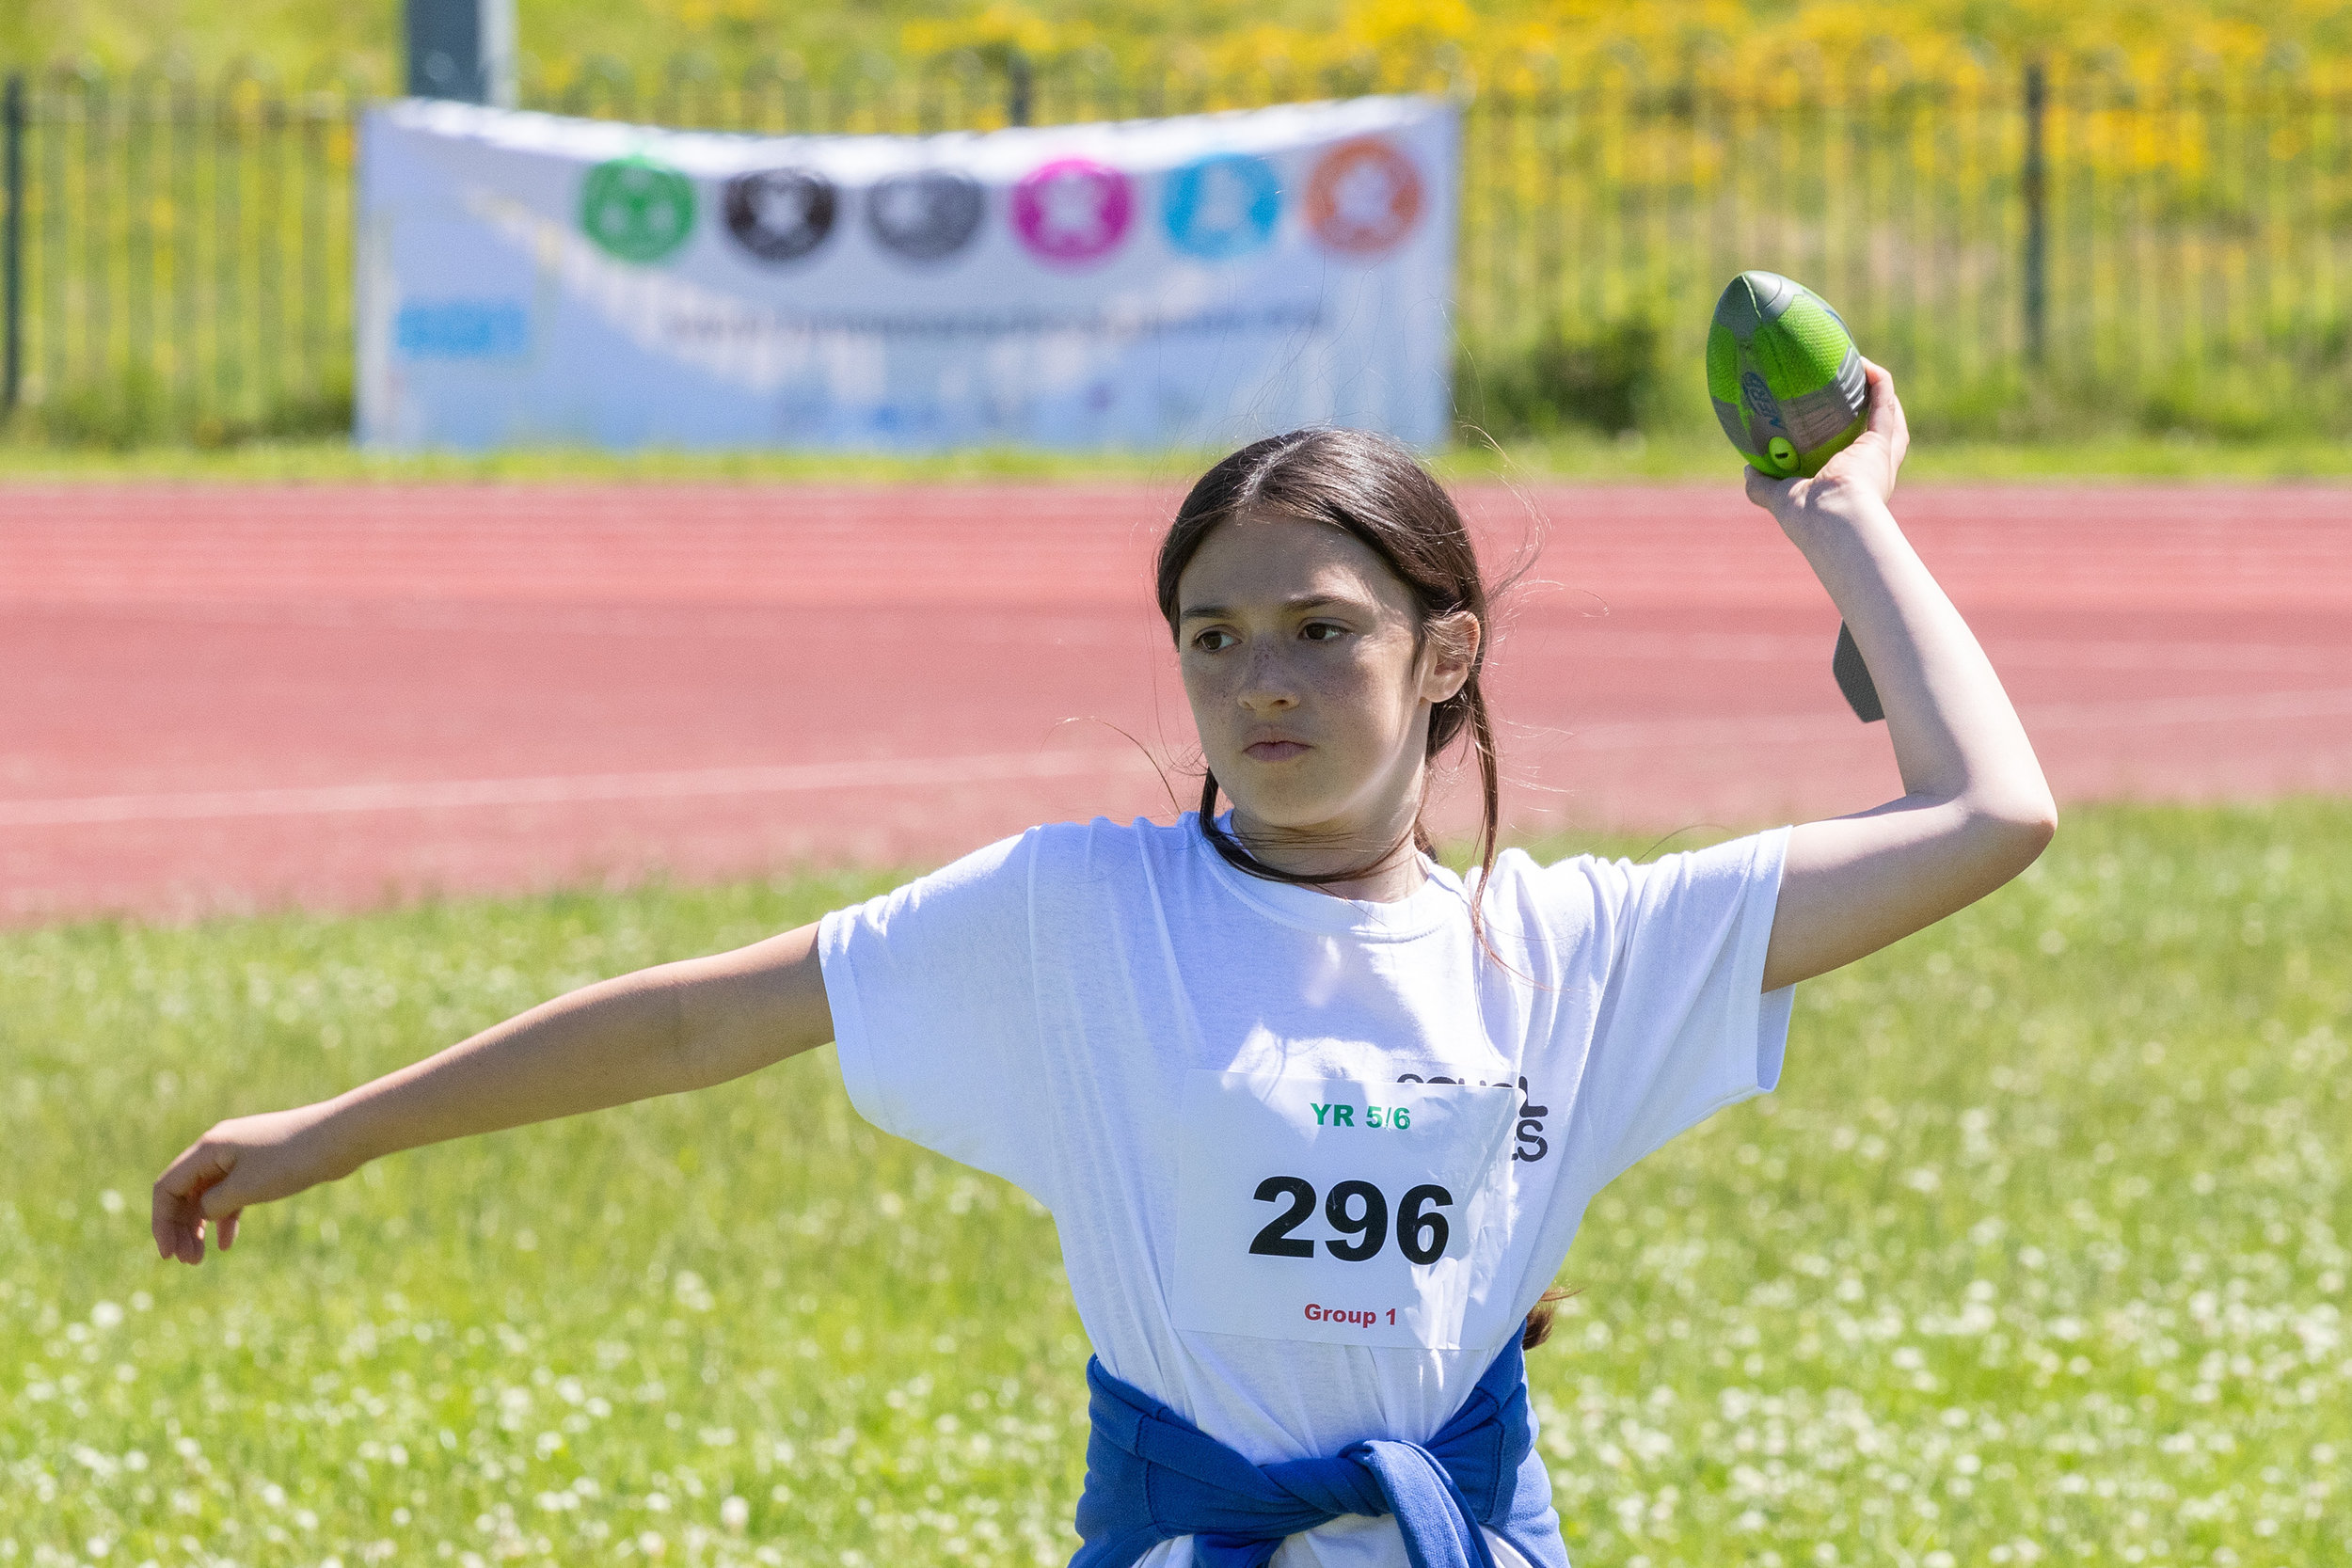 7682-391- Summer School Games 2019.jpg